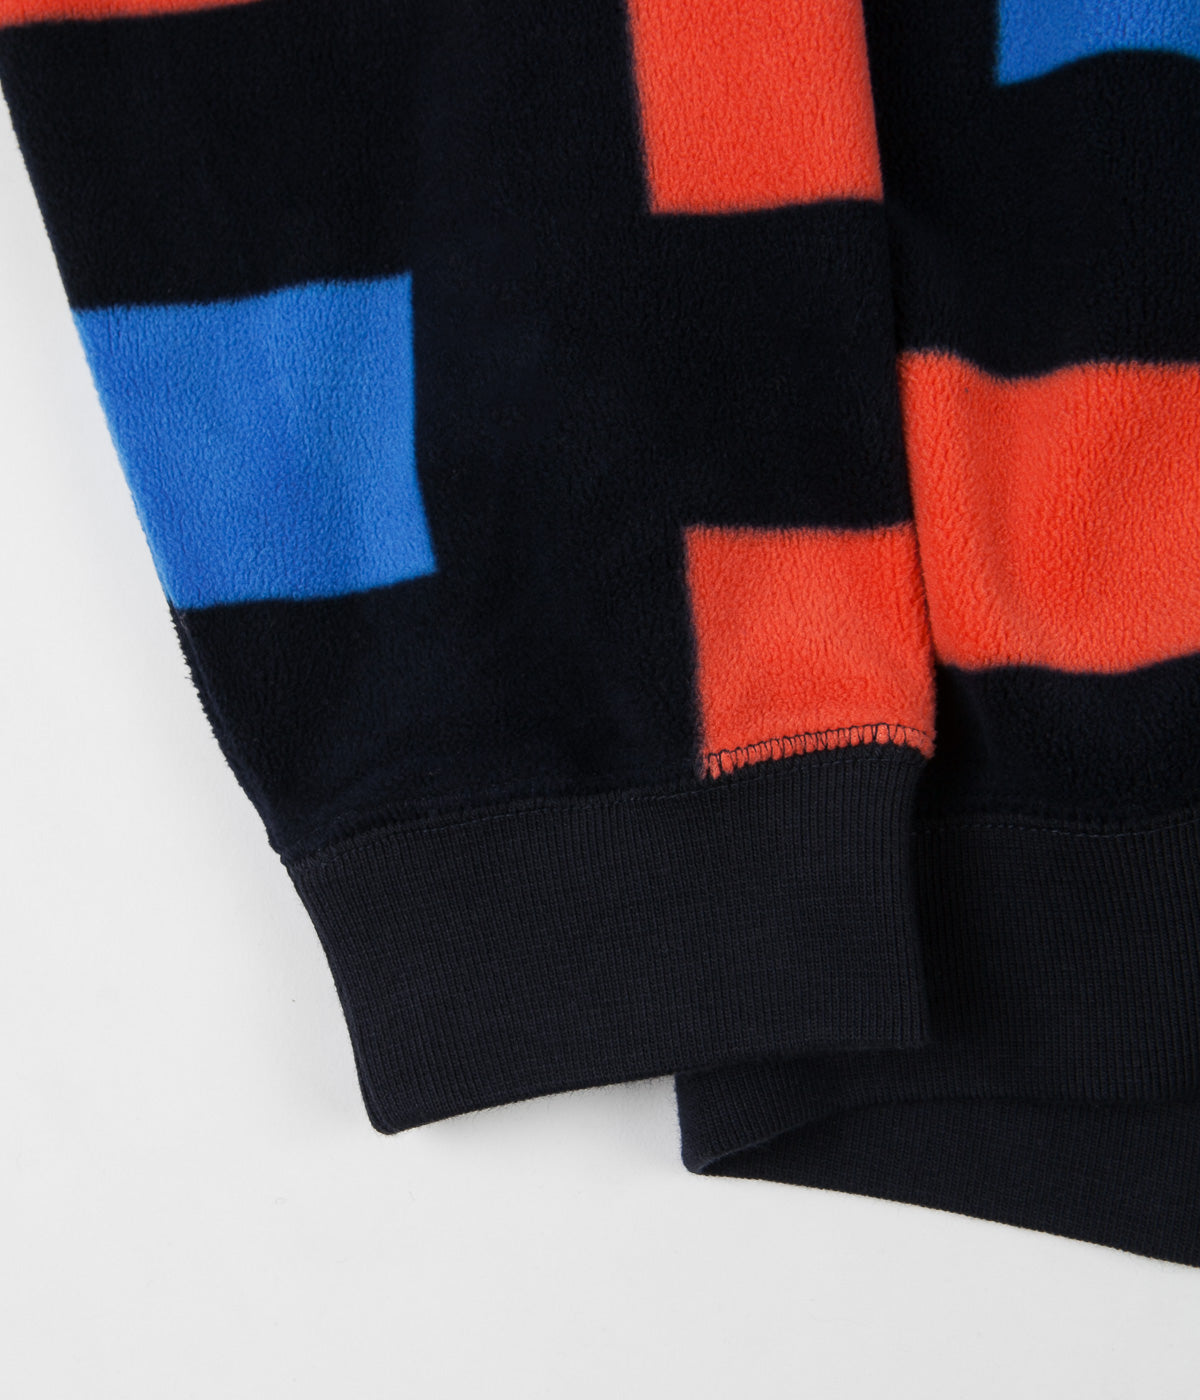 Nike SB Icon Nomad Crewneck Sweatshirt - Dark Obsidian / Bright Crimson